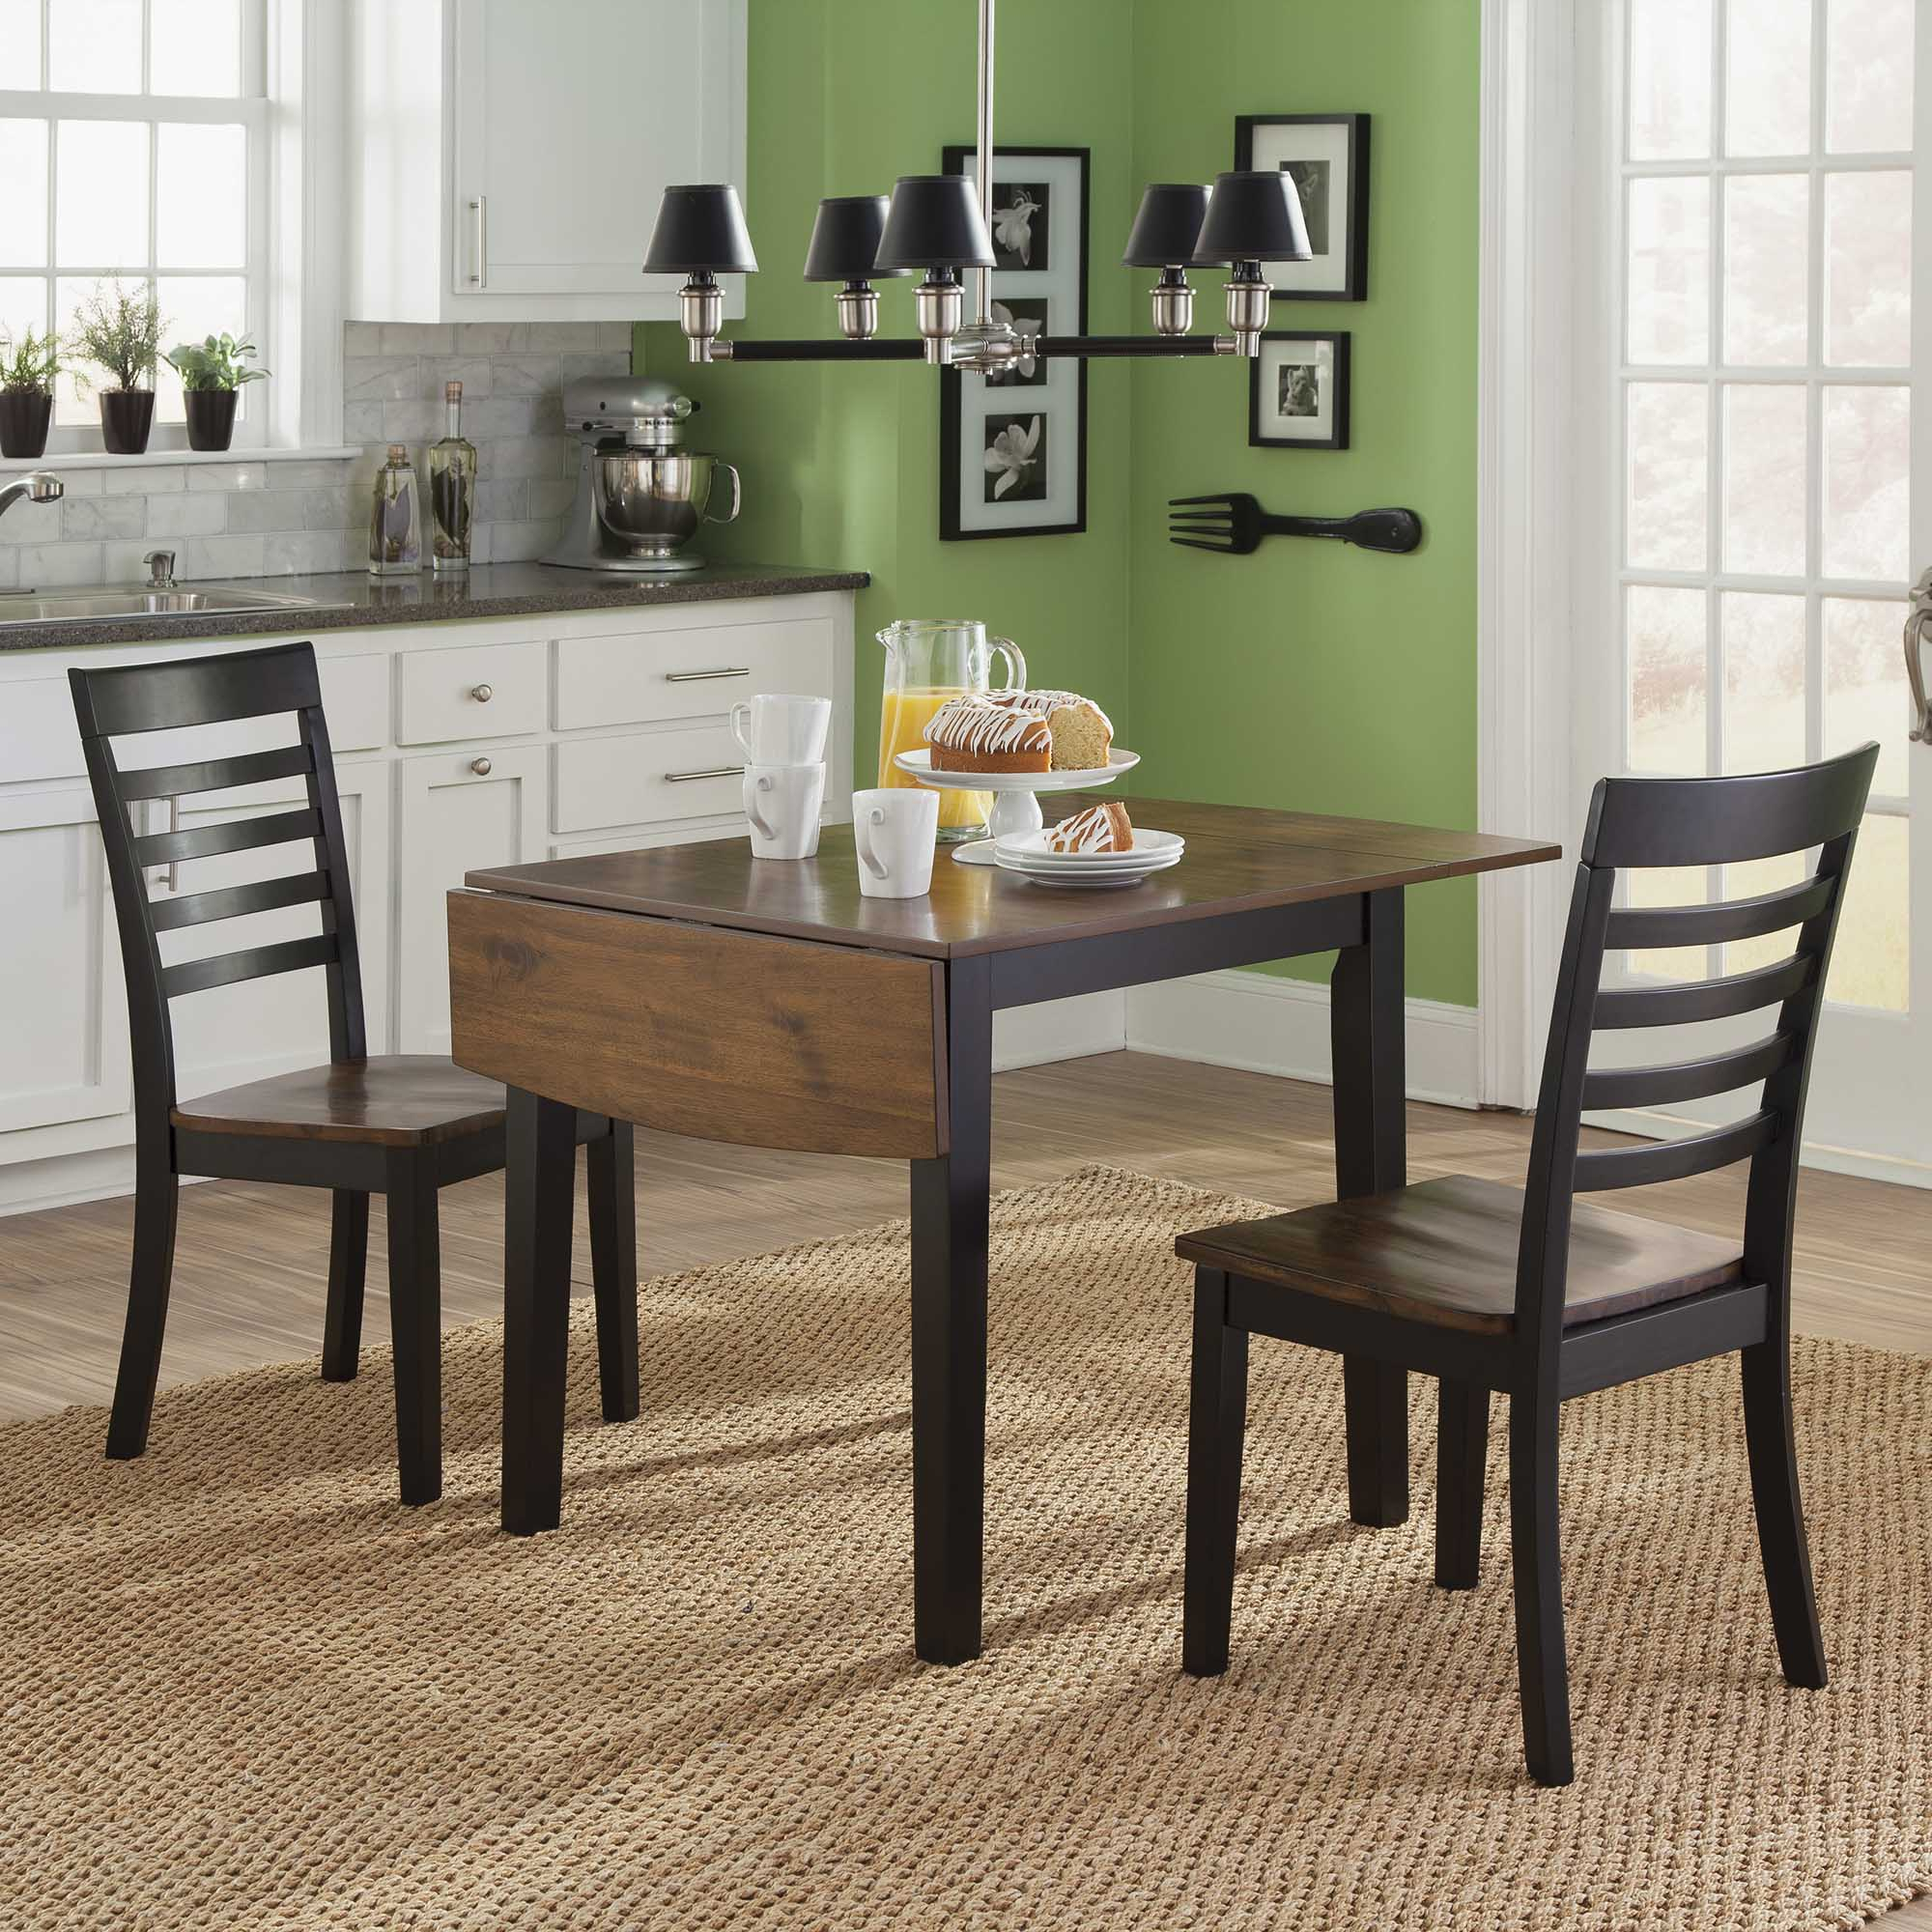 Dining | Liberty Regarding Latest Springfield 3 Piece Dining Sets (Photo 11 of 20)